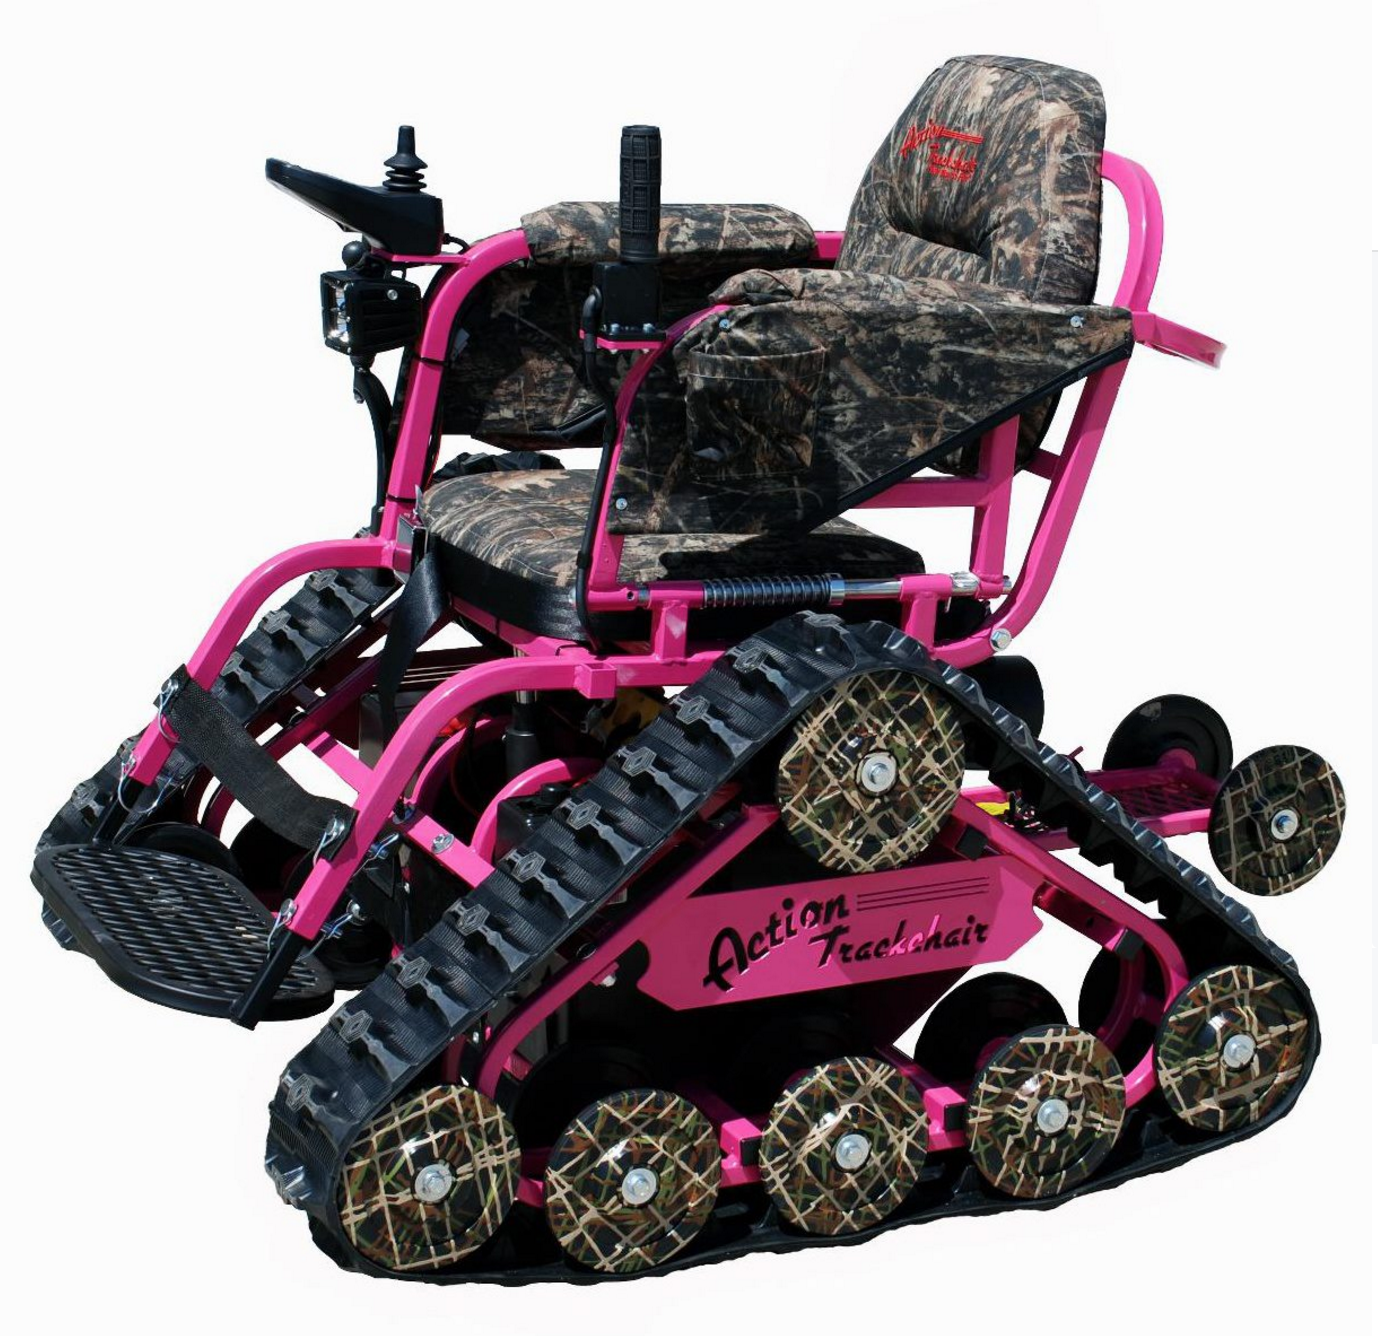 Incredible Action Trackchair Power Chairs And Scooter Store Download Free Architecture Designs Scobabritishbridgeorg